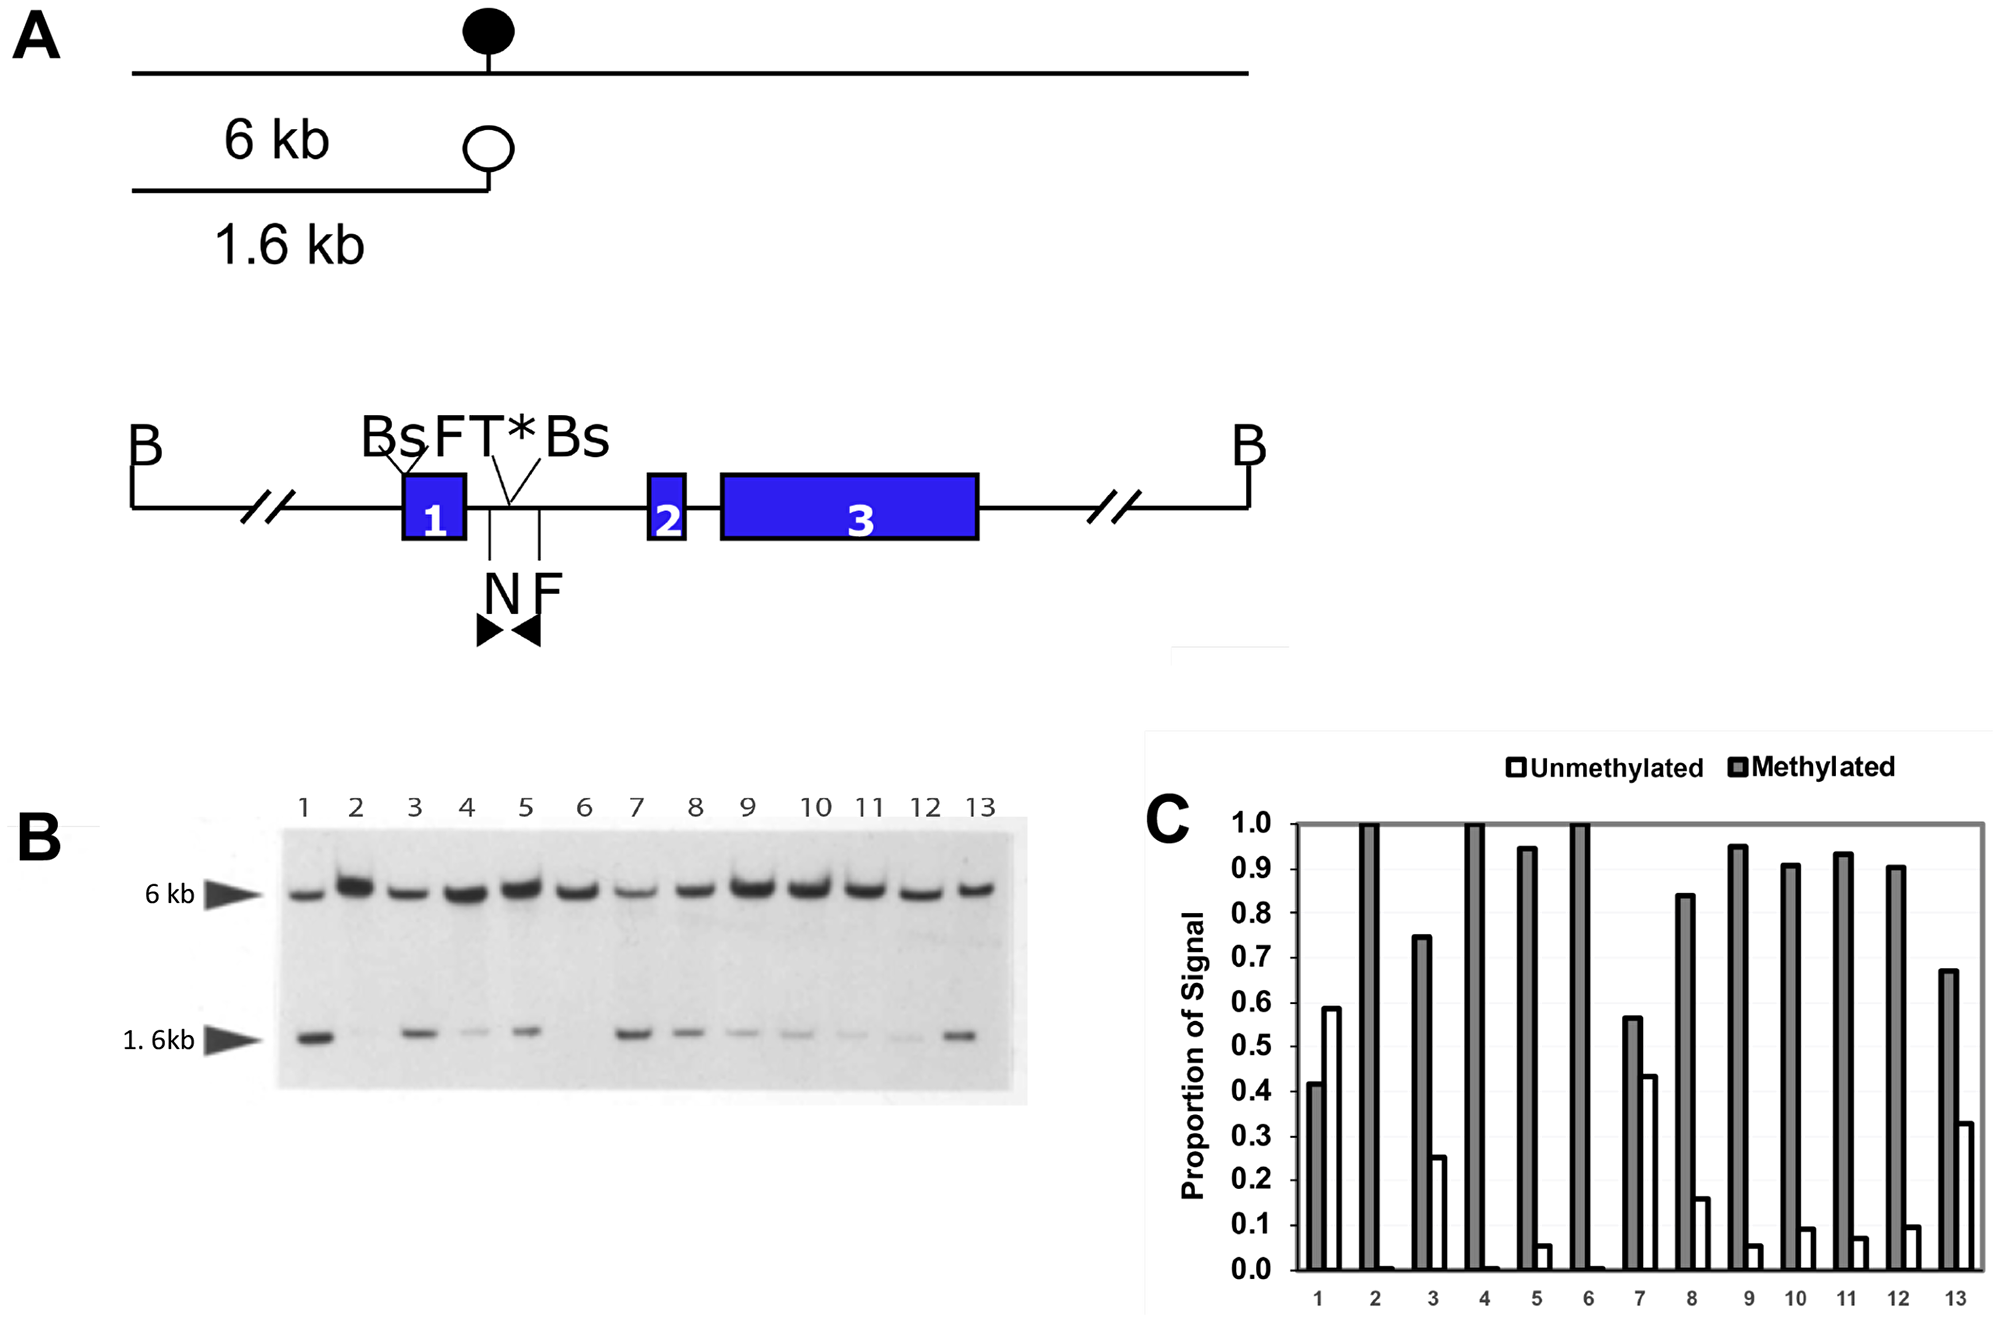 Quantitative methylation analysis shows that the NNAT CpG island is hypermethylated in human osteosarcoma tumor samples.